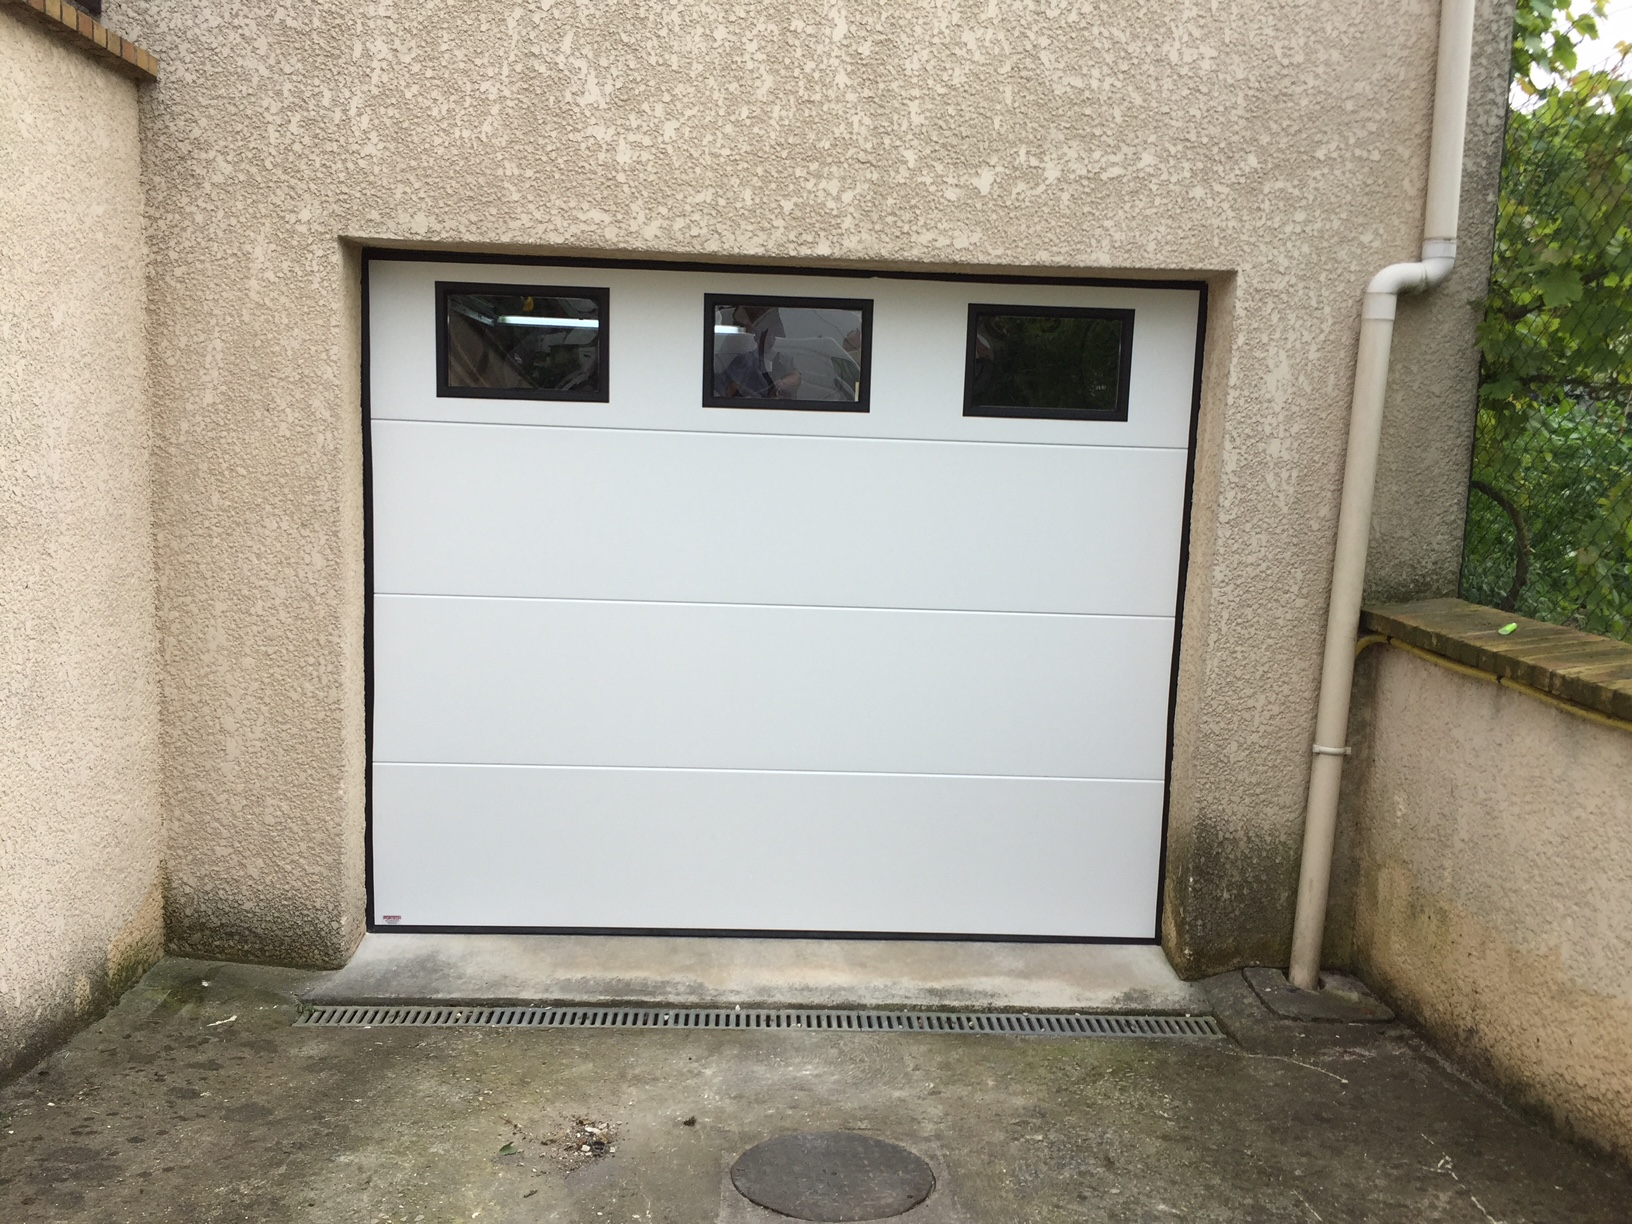 Portes de garage sectionnelle r sidentielle portech - Hublot porte de garage sectionnelle ...